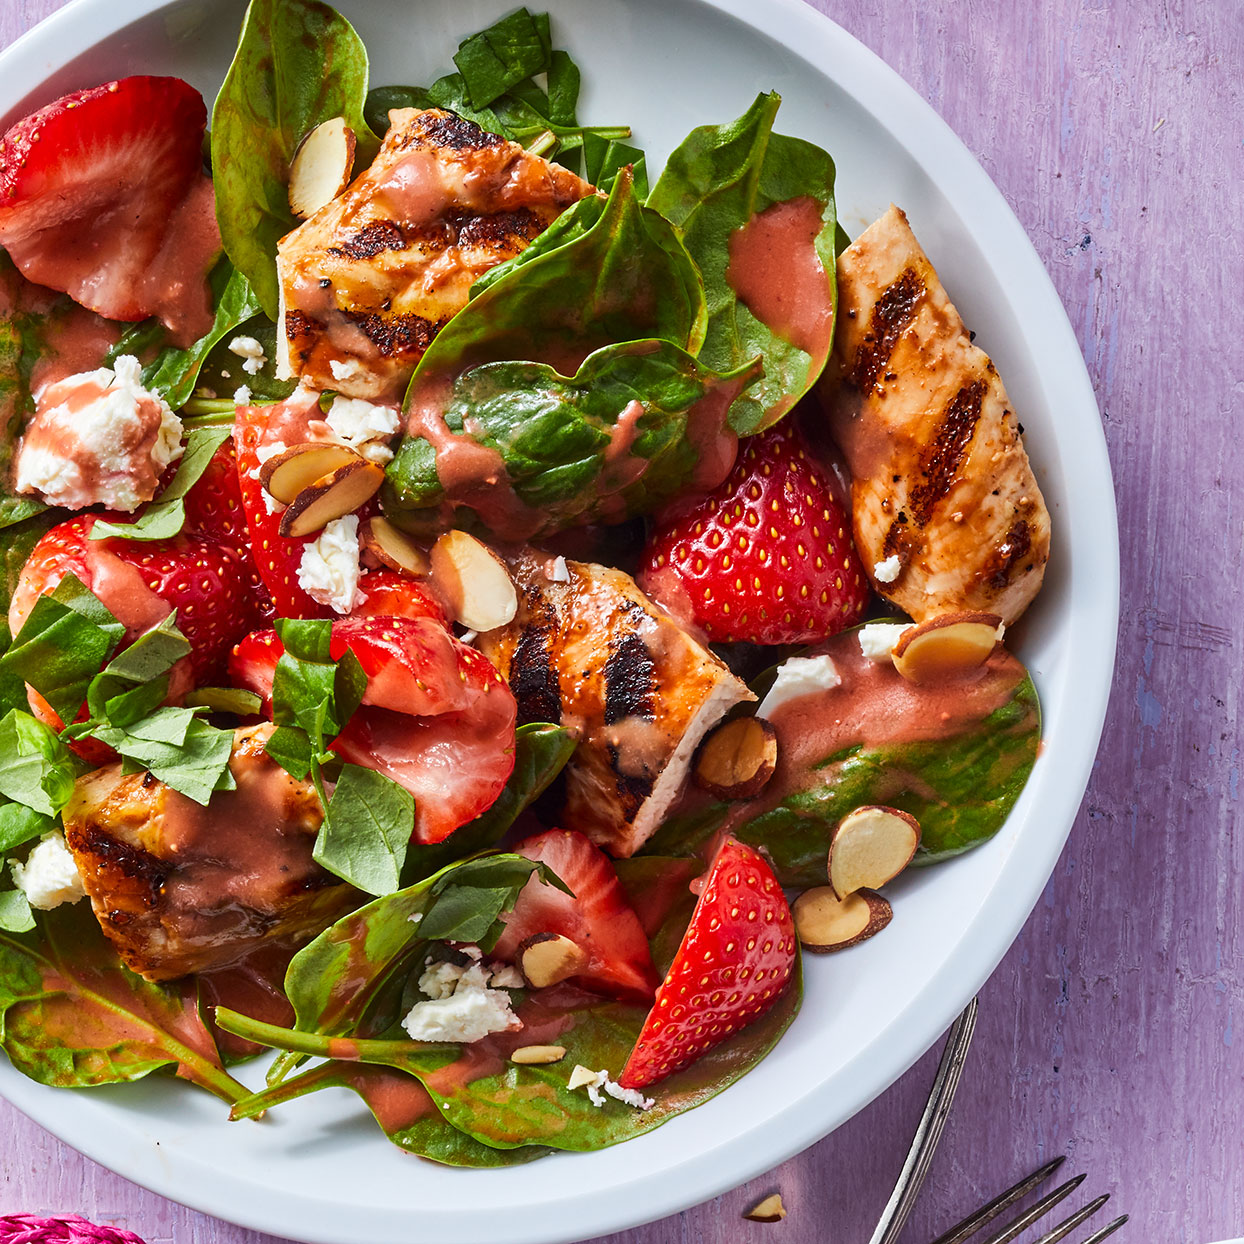 Strawberry-Balsamic Spinach Salad with Chicken